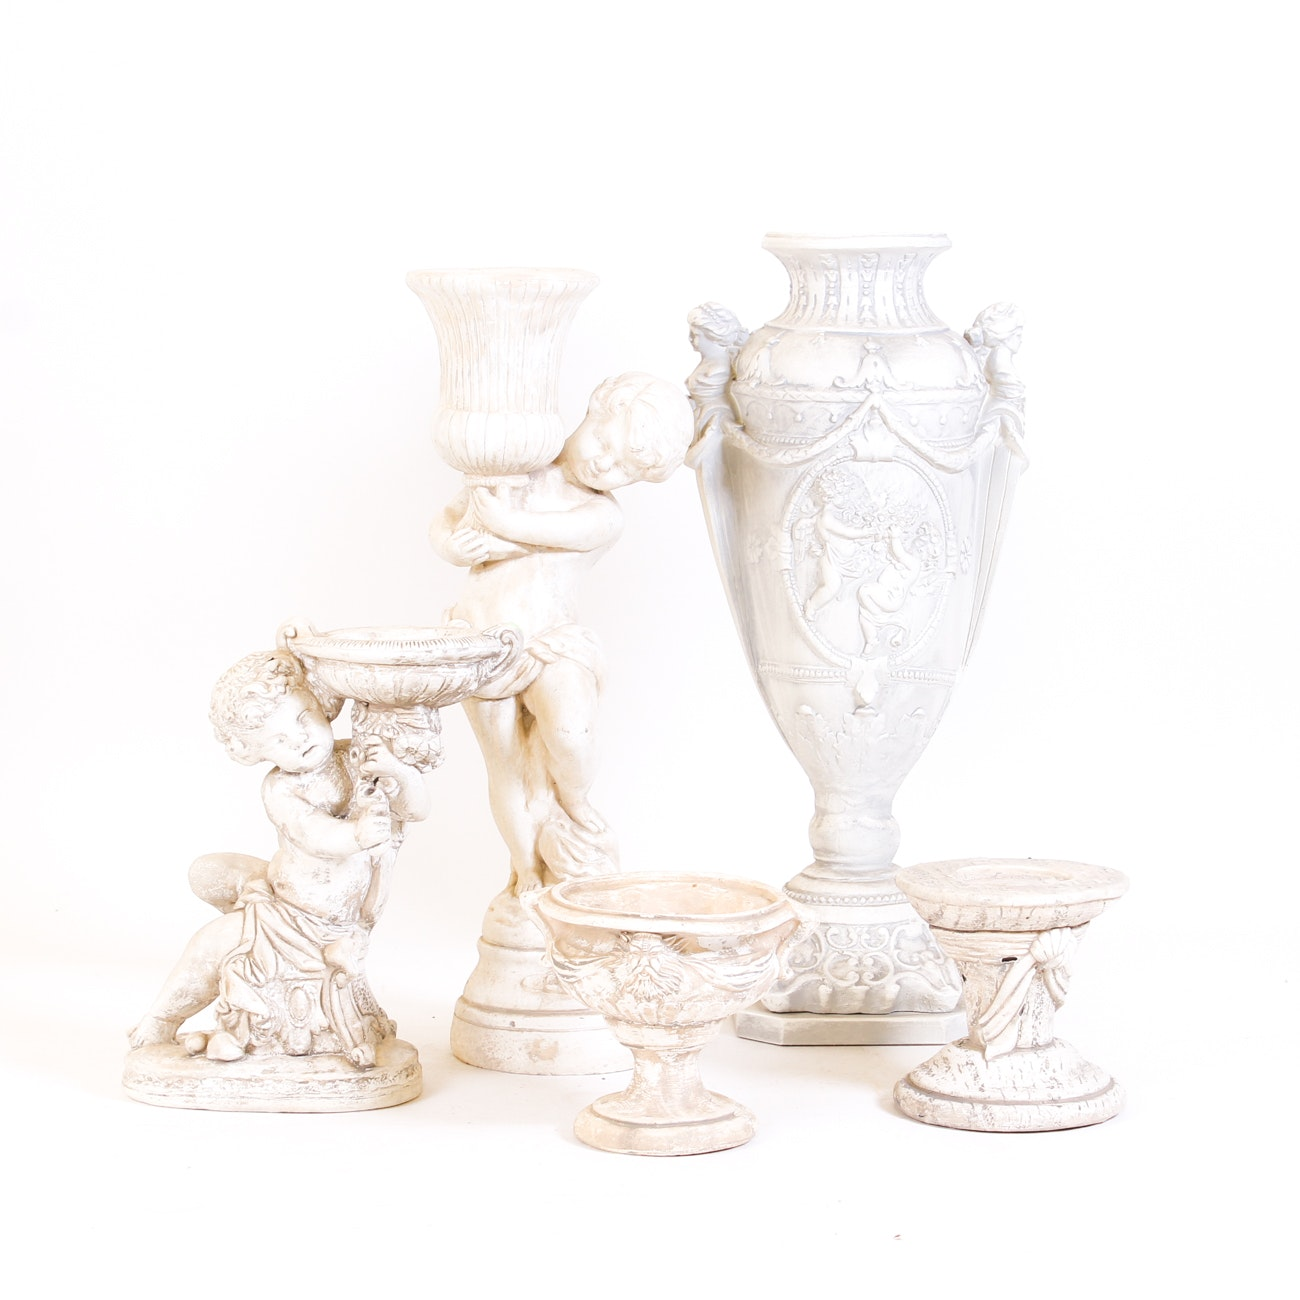 Neoclassical Style Urns, Candleholders and Vases